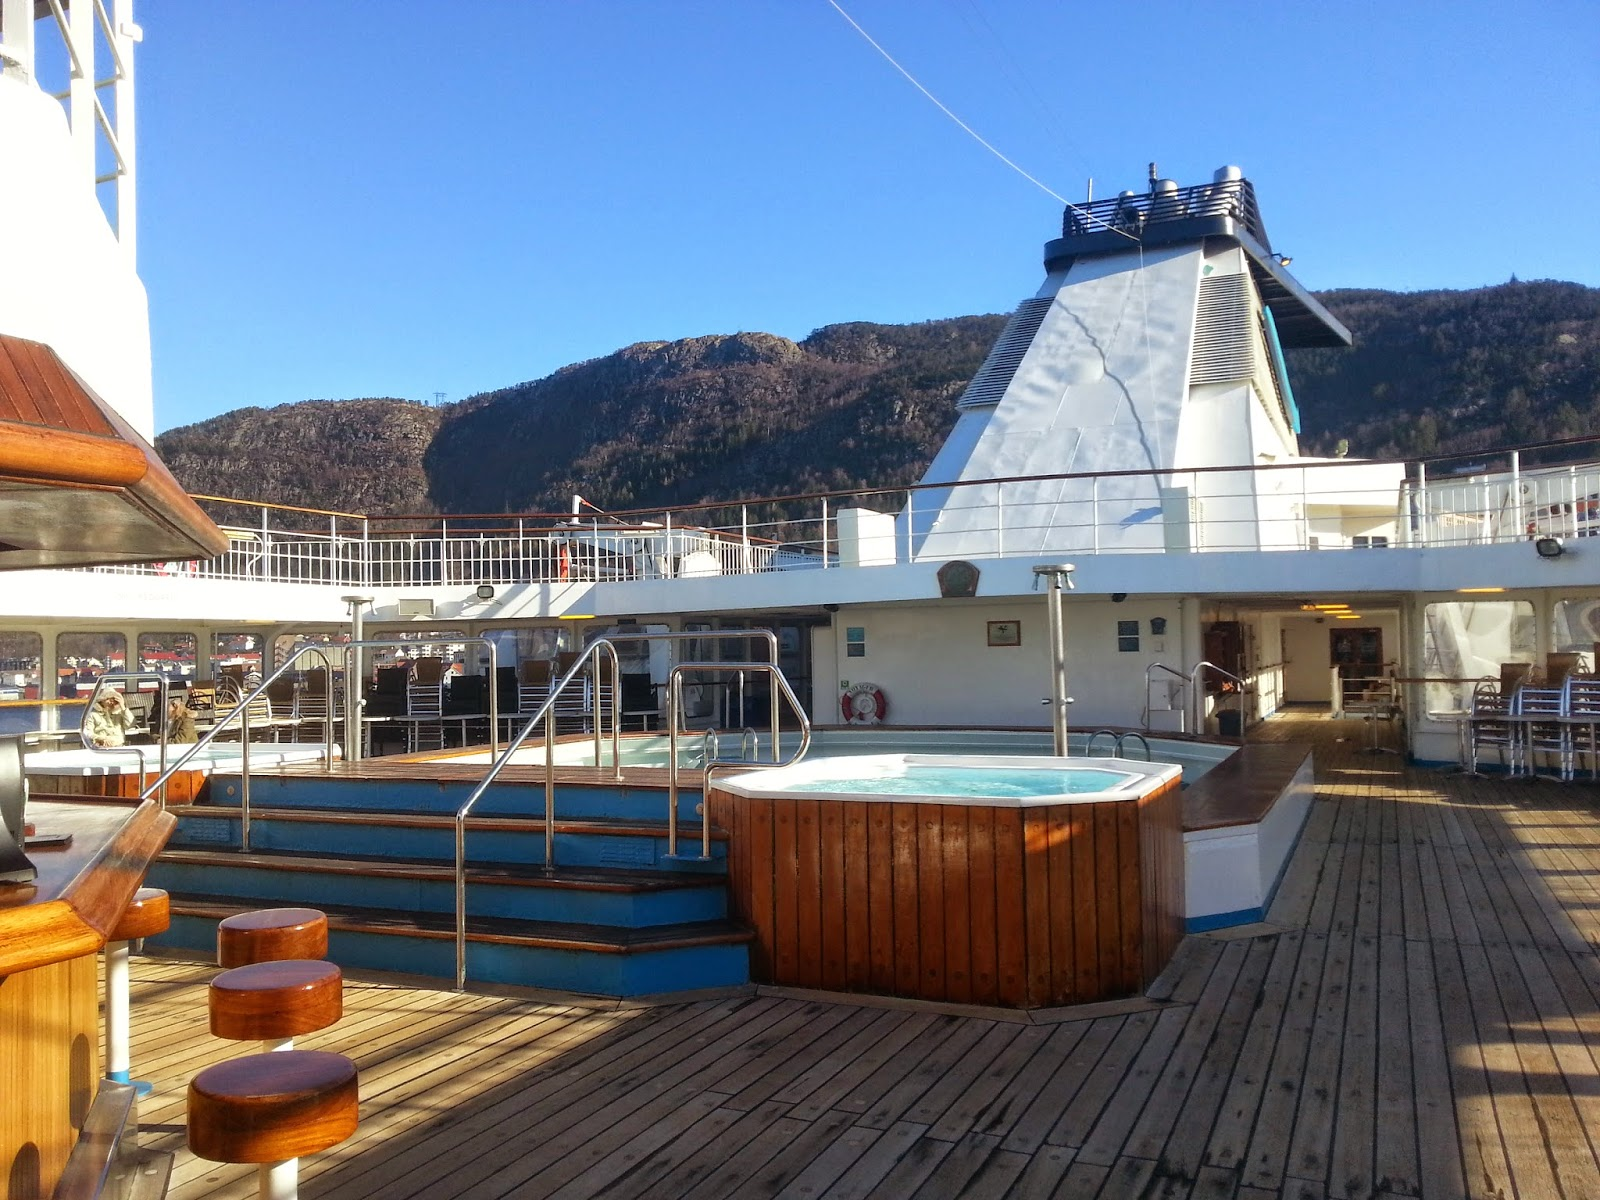 On Board Voyages of Discovery's Cruise Ship MV Voyager - Swimming Pool and Open Decks